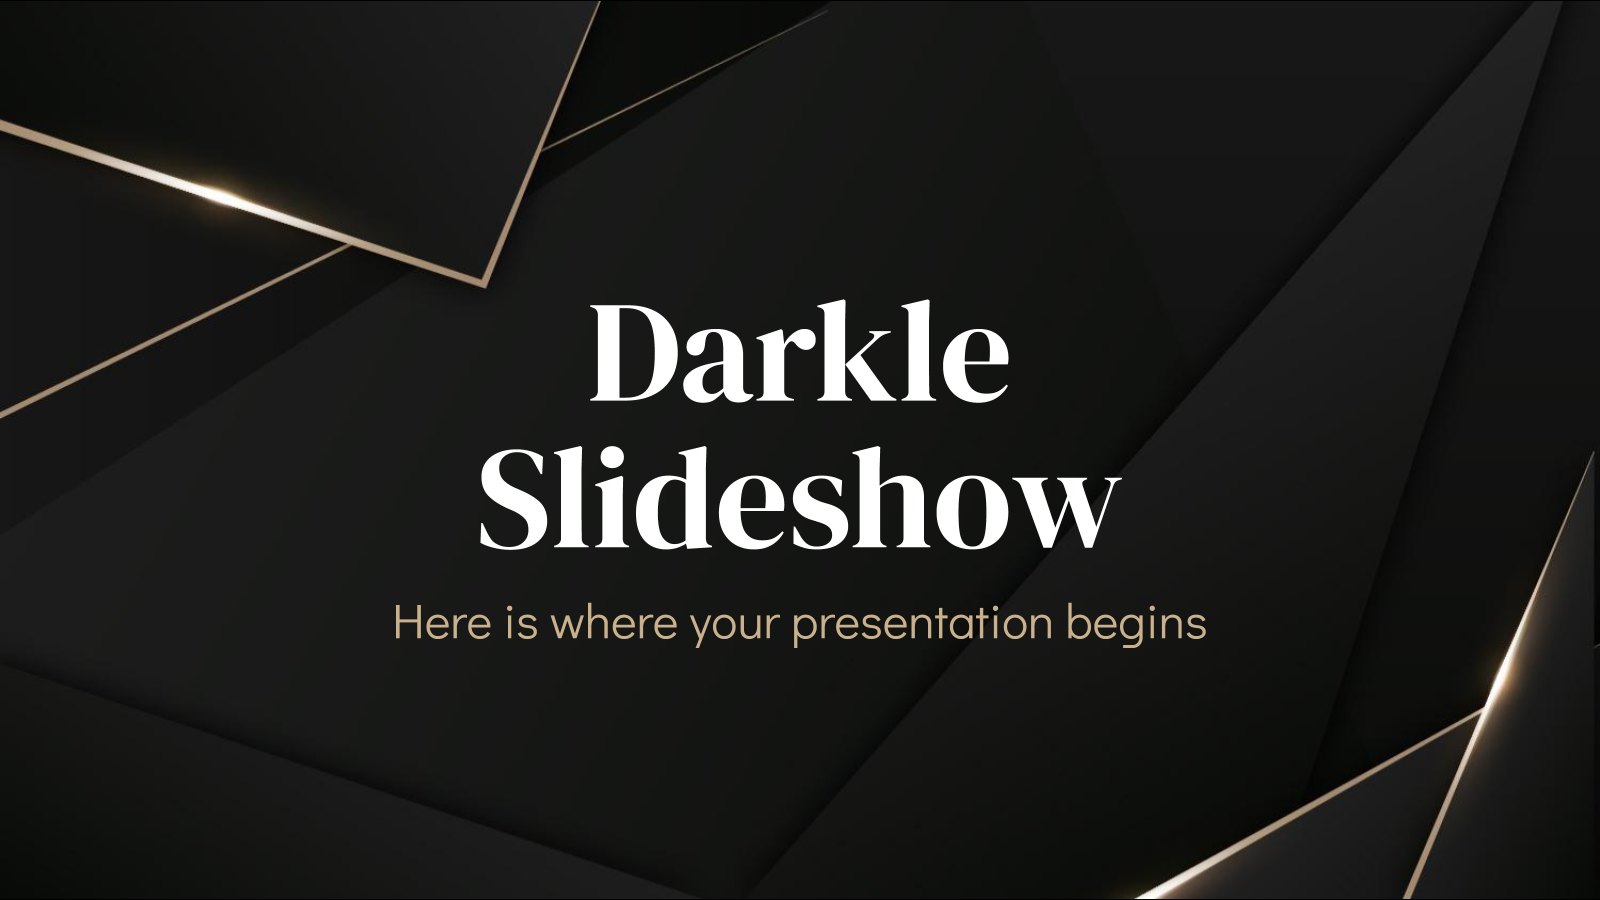 Darkle Slideshow presentation template